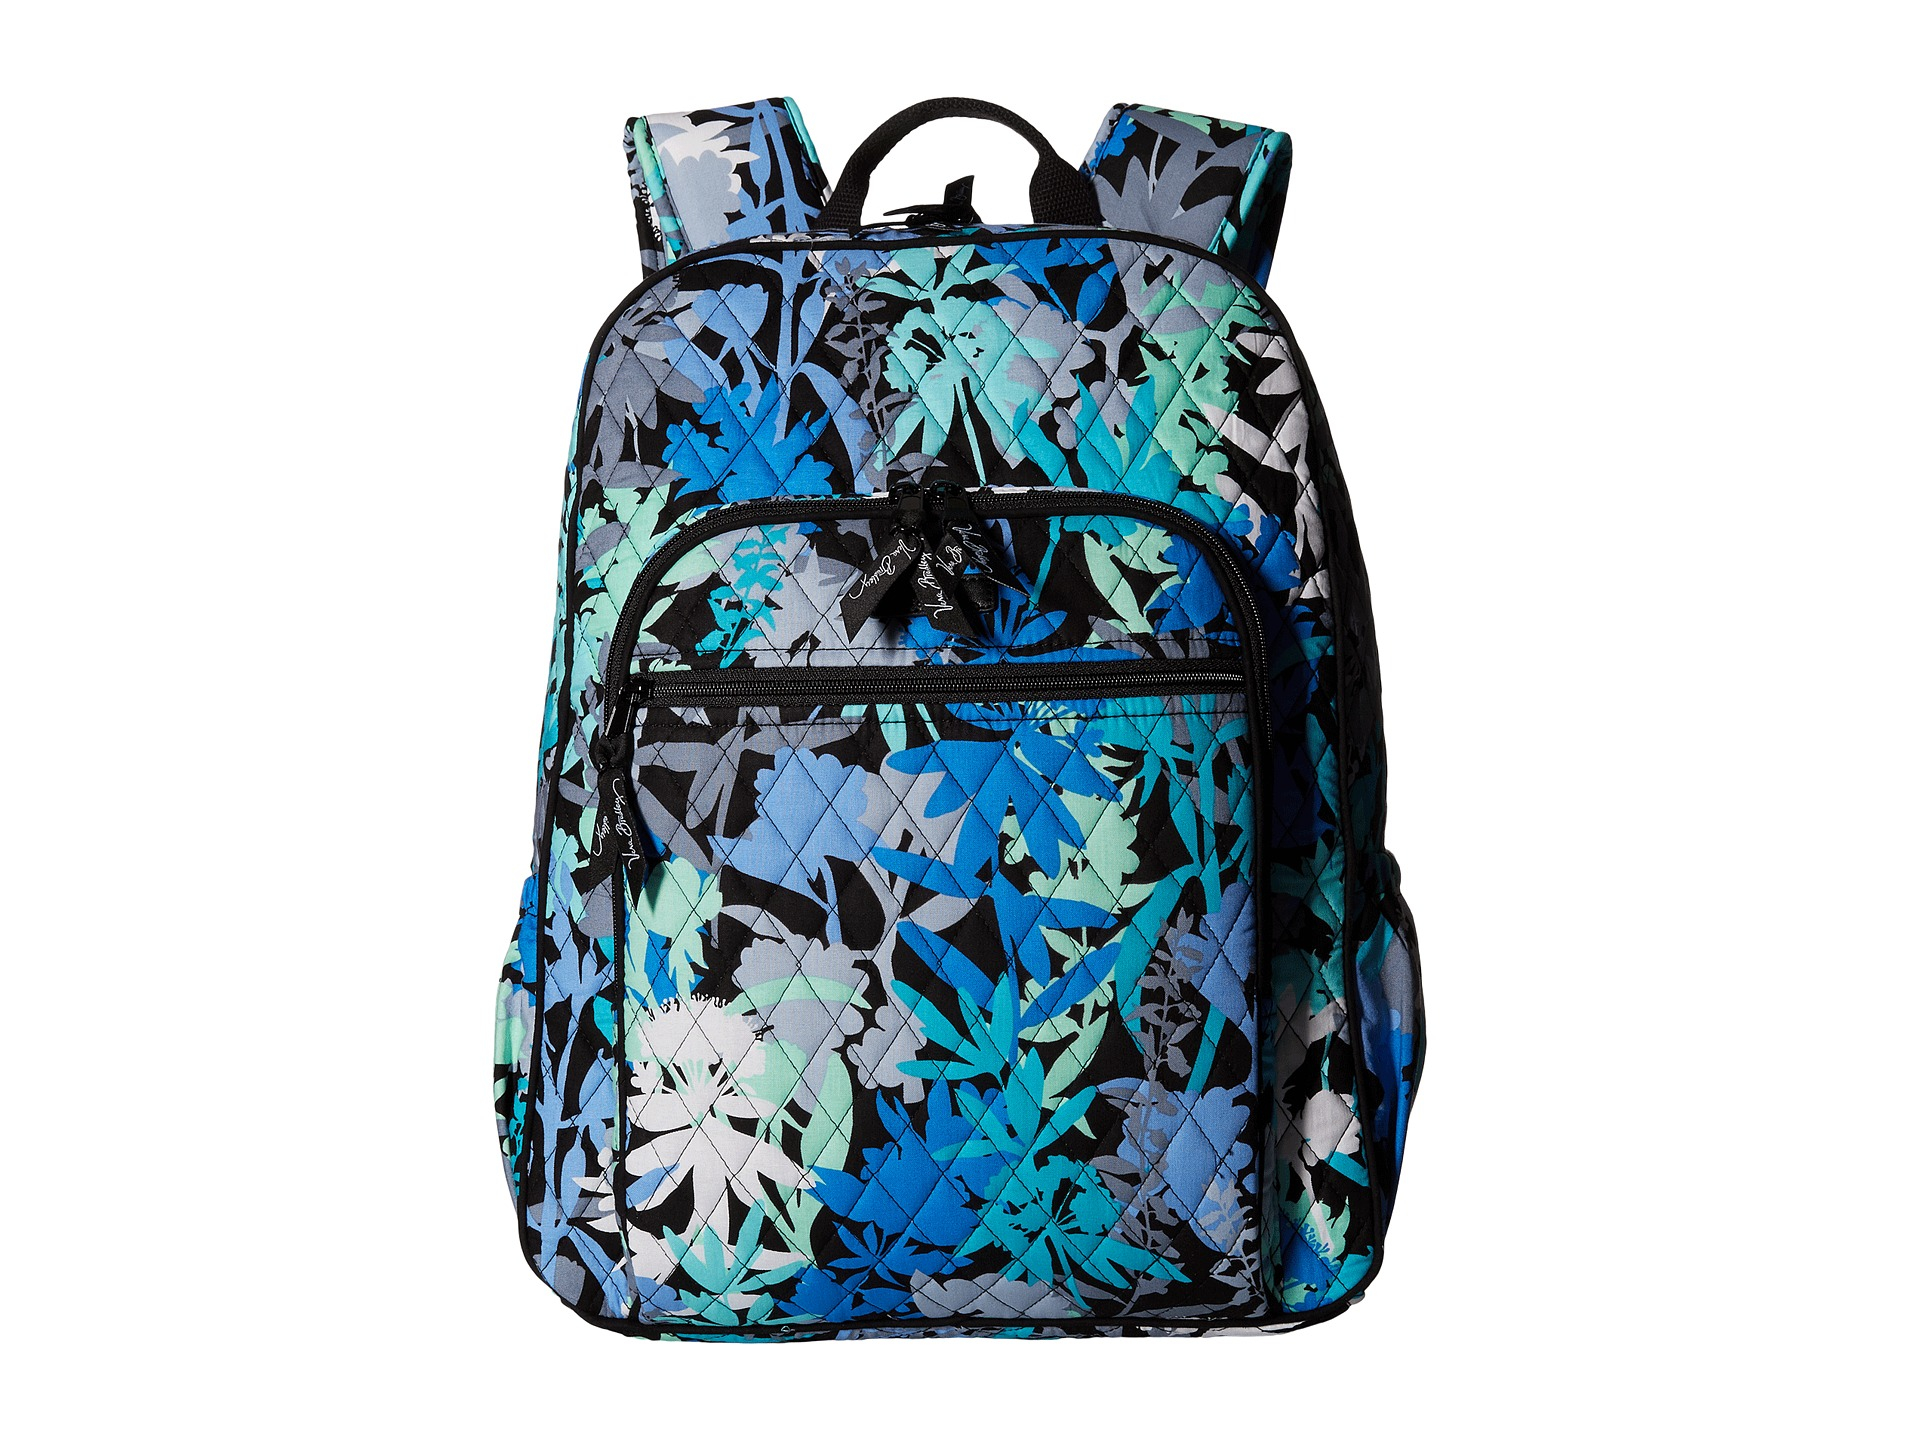 6821c52445dc Lyst - Vera Bradley Campus Backpack in Blue